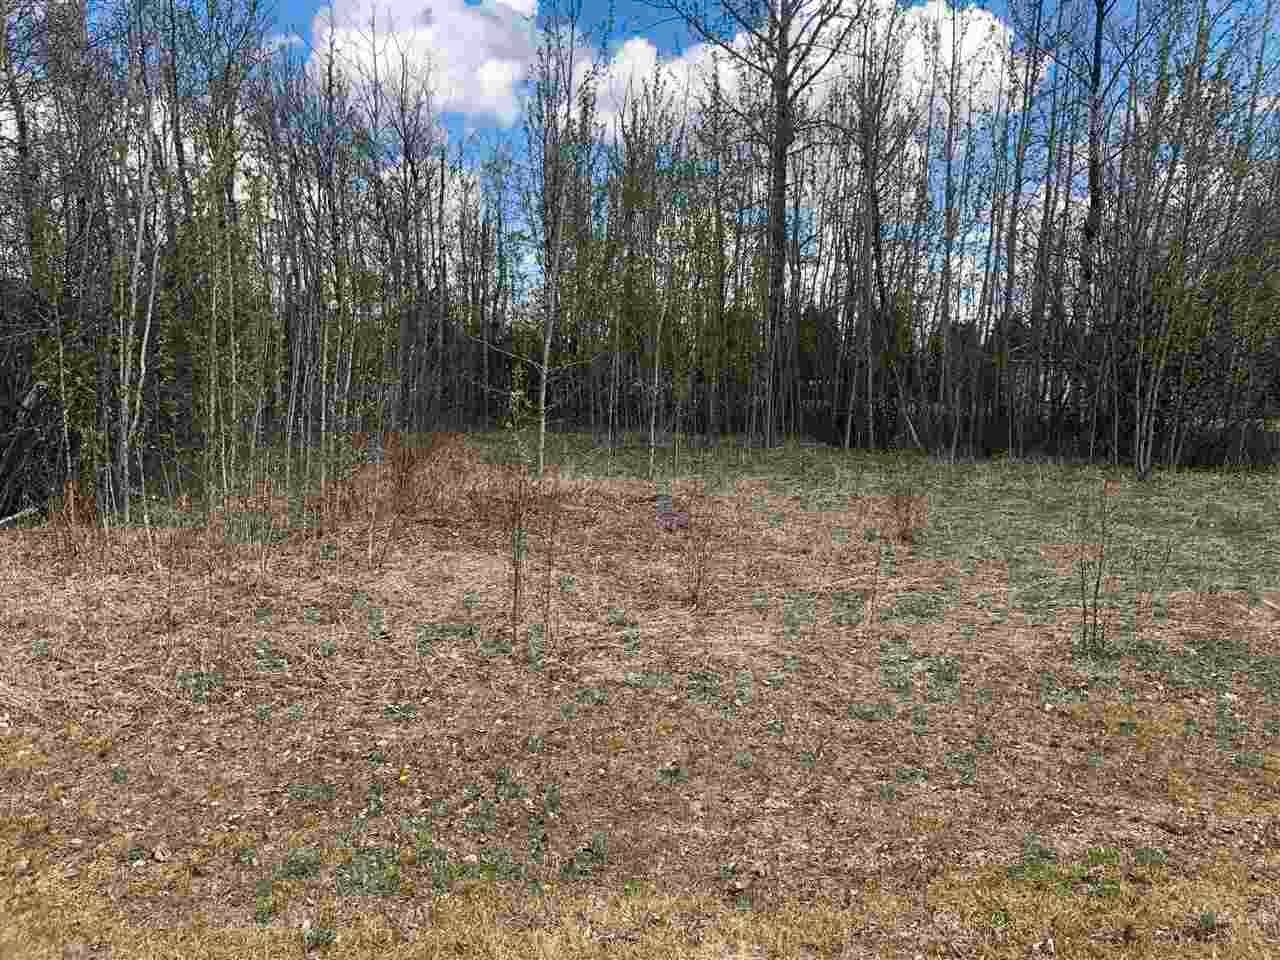 Main Photo: 97-15065 Twp Rd 470: Rural Wetaskiwin County Rural Land/Vacant Lot for sale : MLS®# E4243872